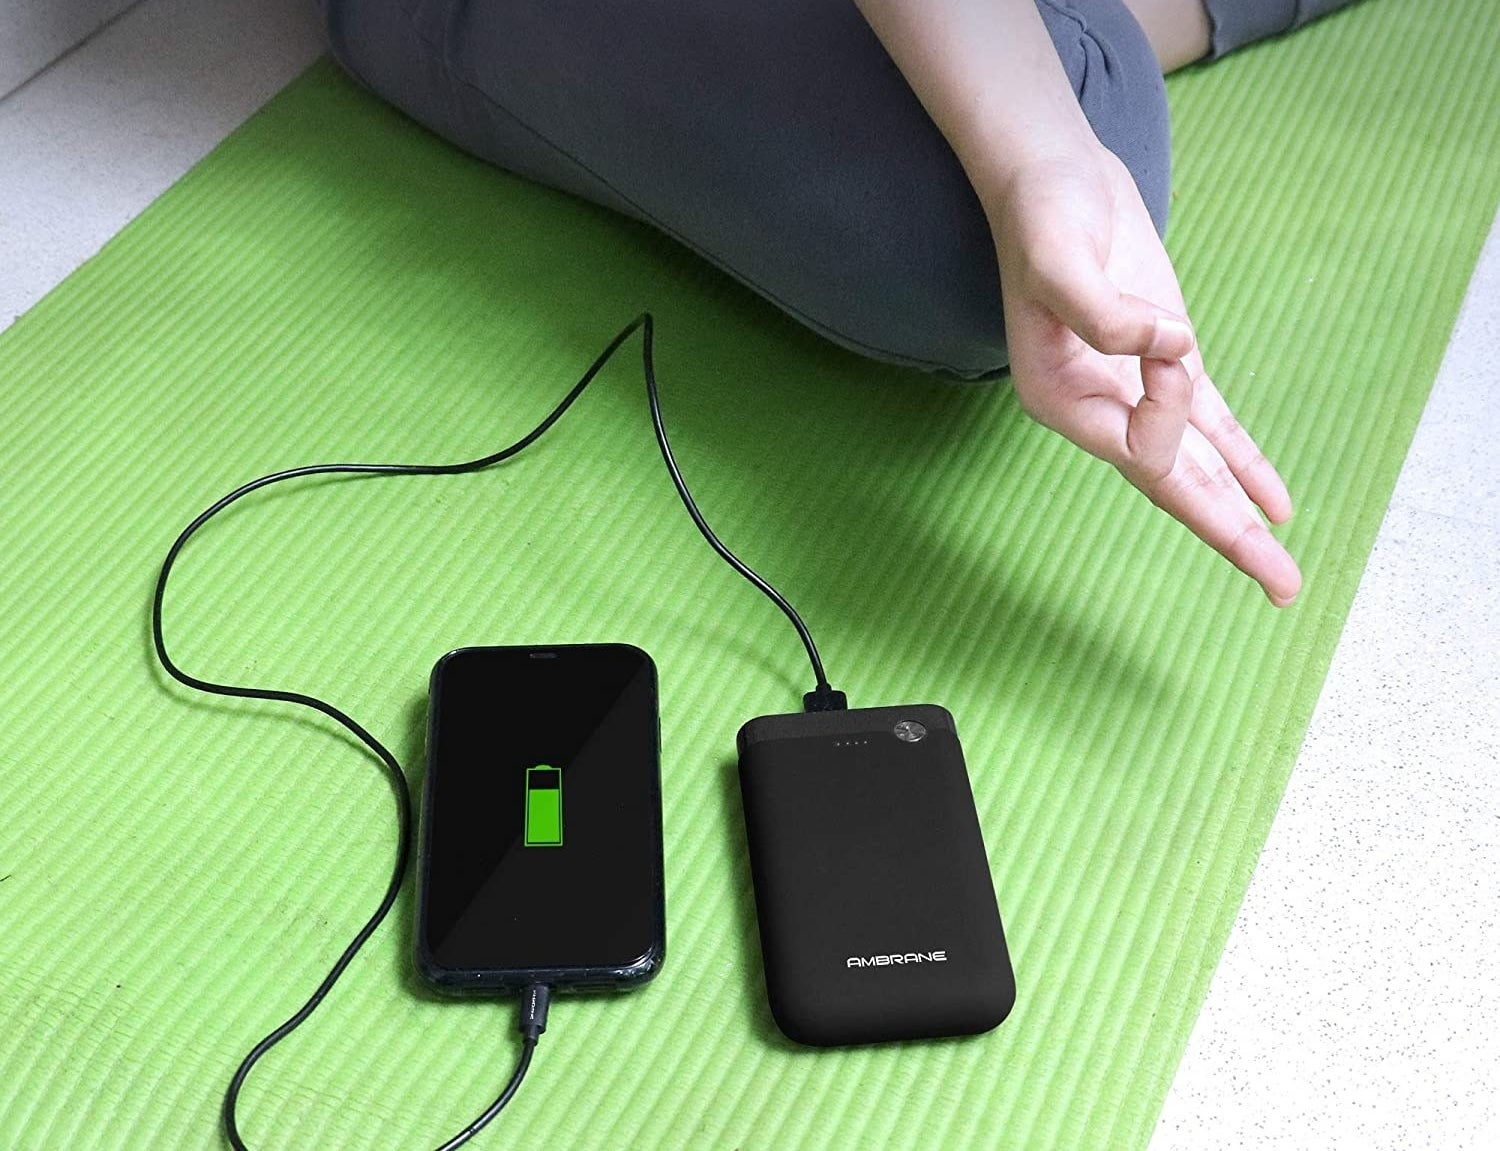 The power bank being used to charge a phone.